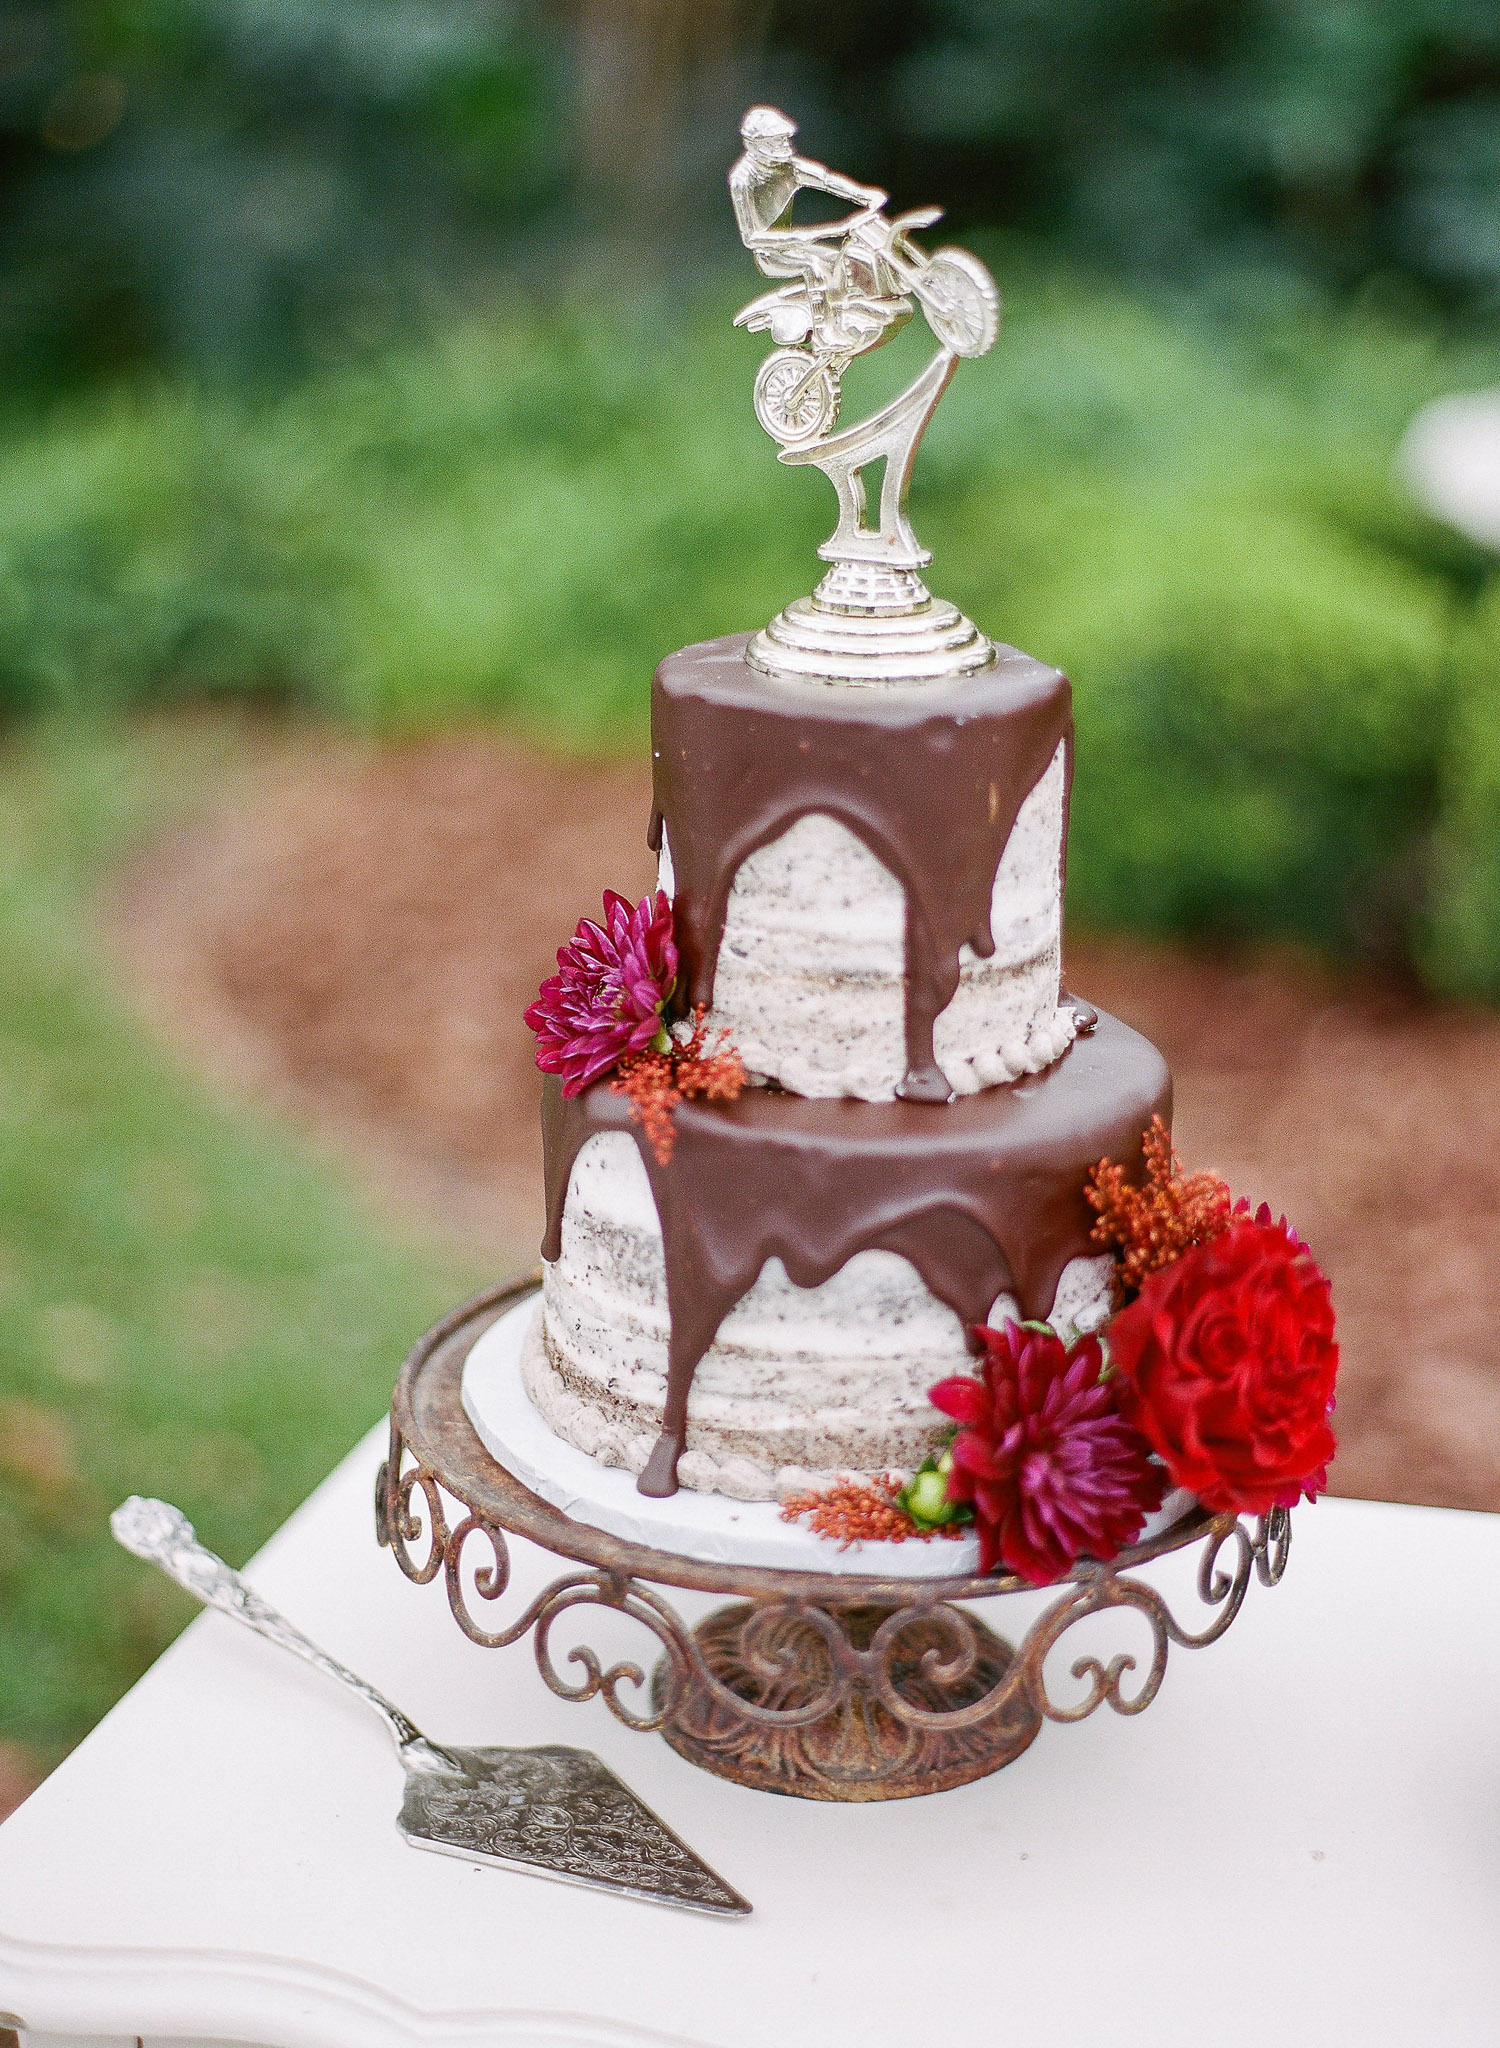 Cake with Trophy Topper